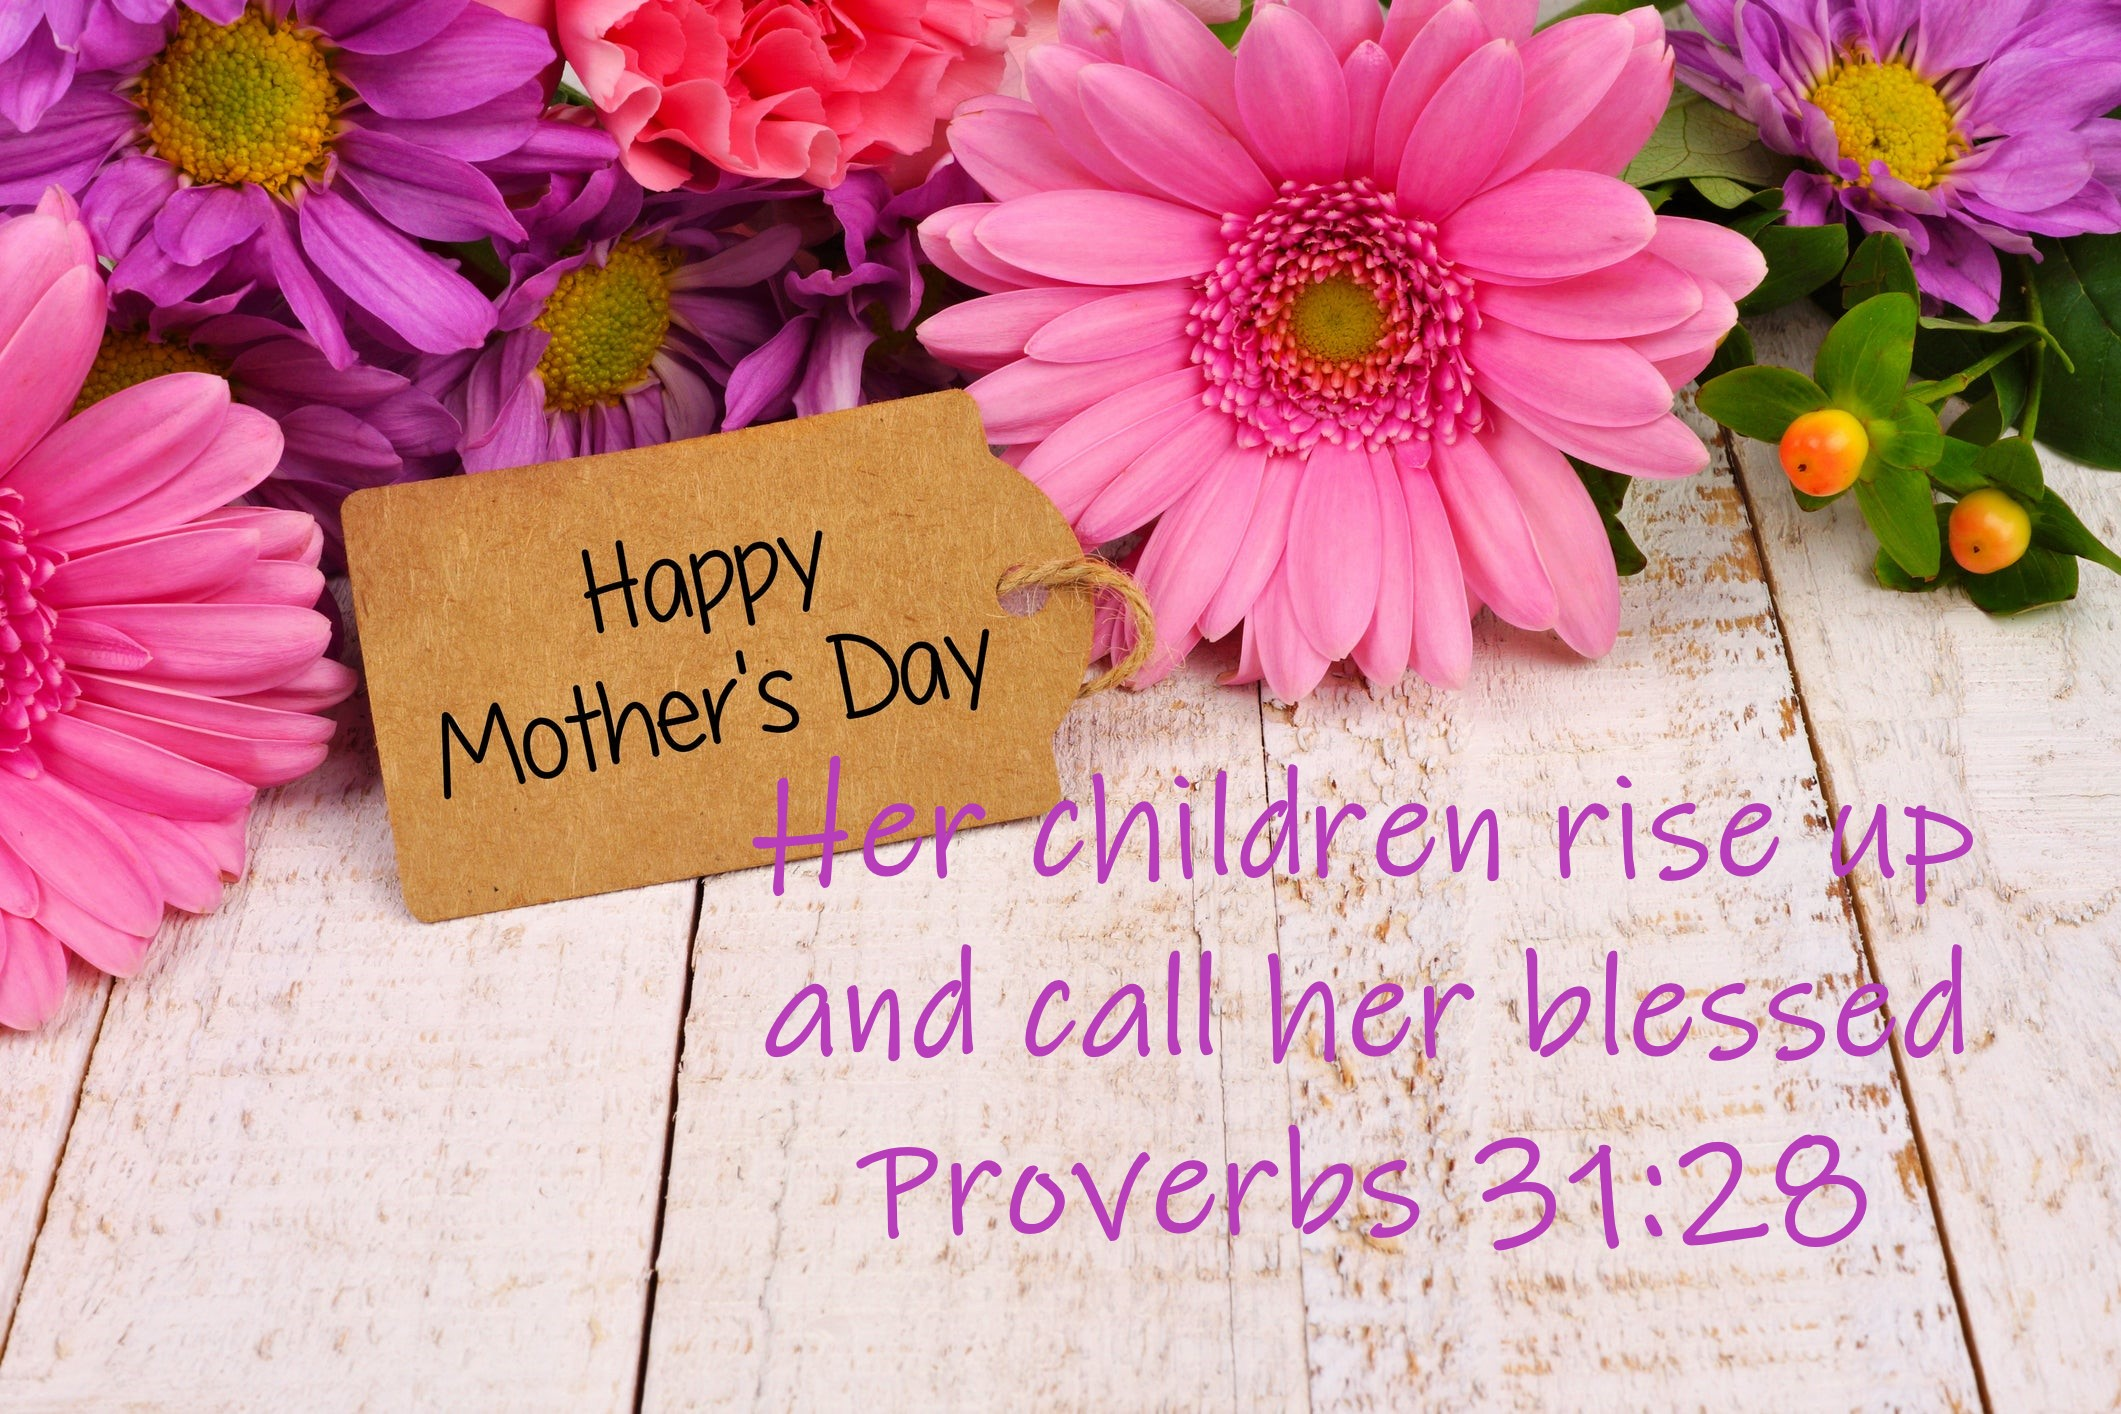 Mother's Day Sunday, May 10th